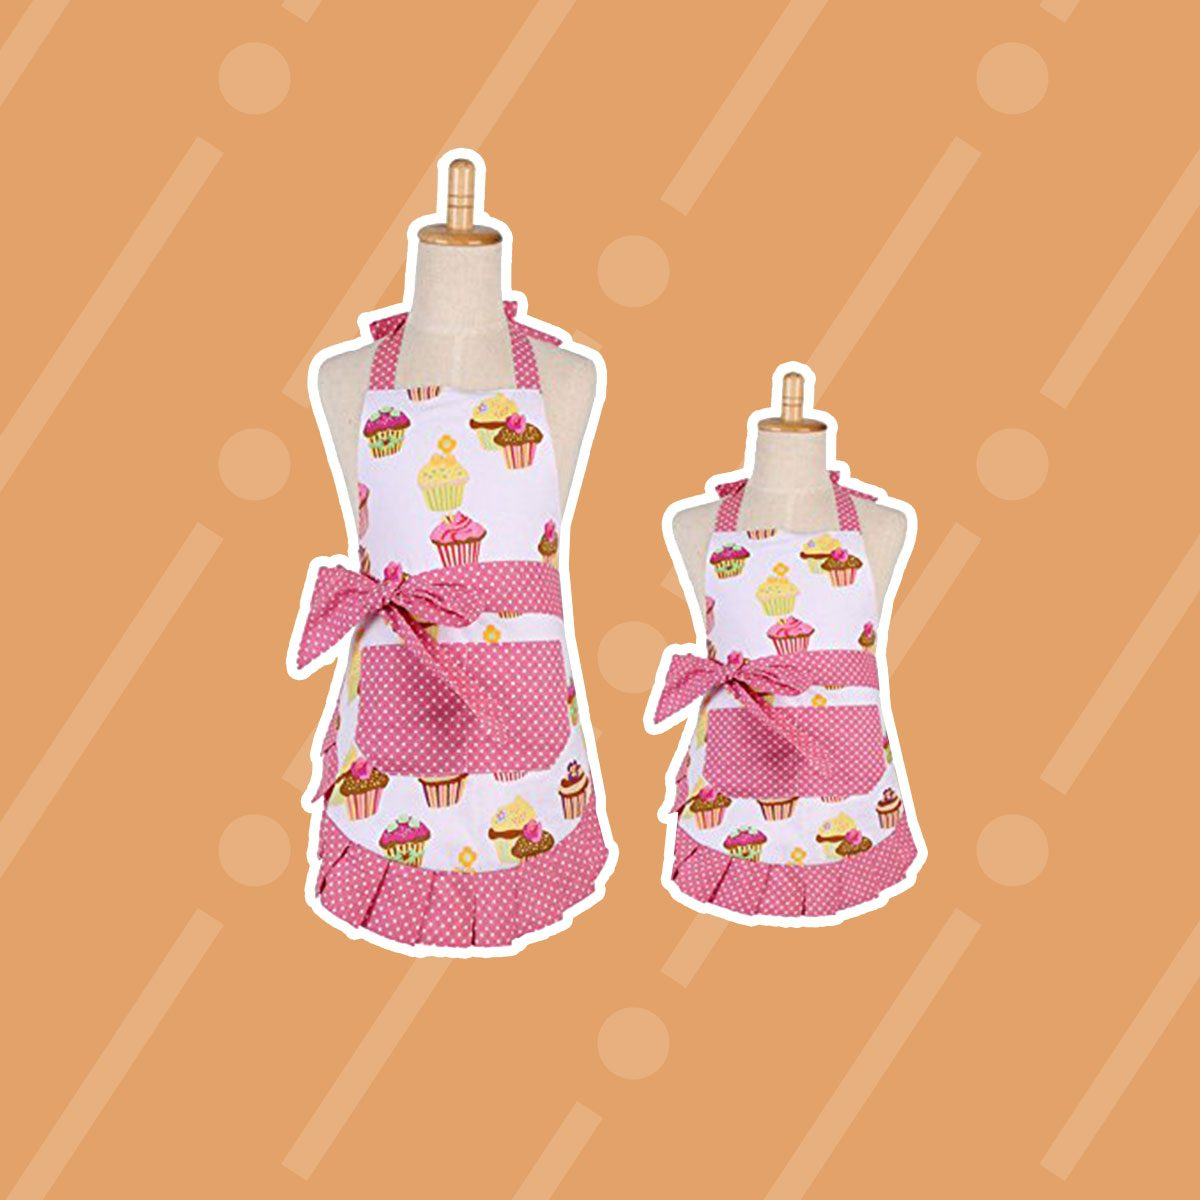 Mama and Me Cupcake Apron Set